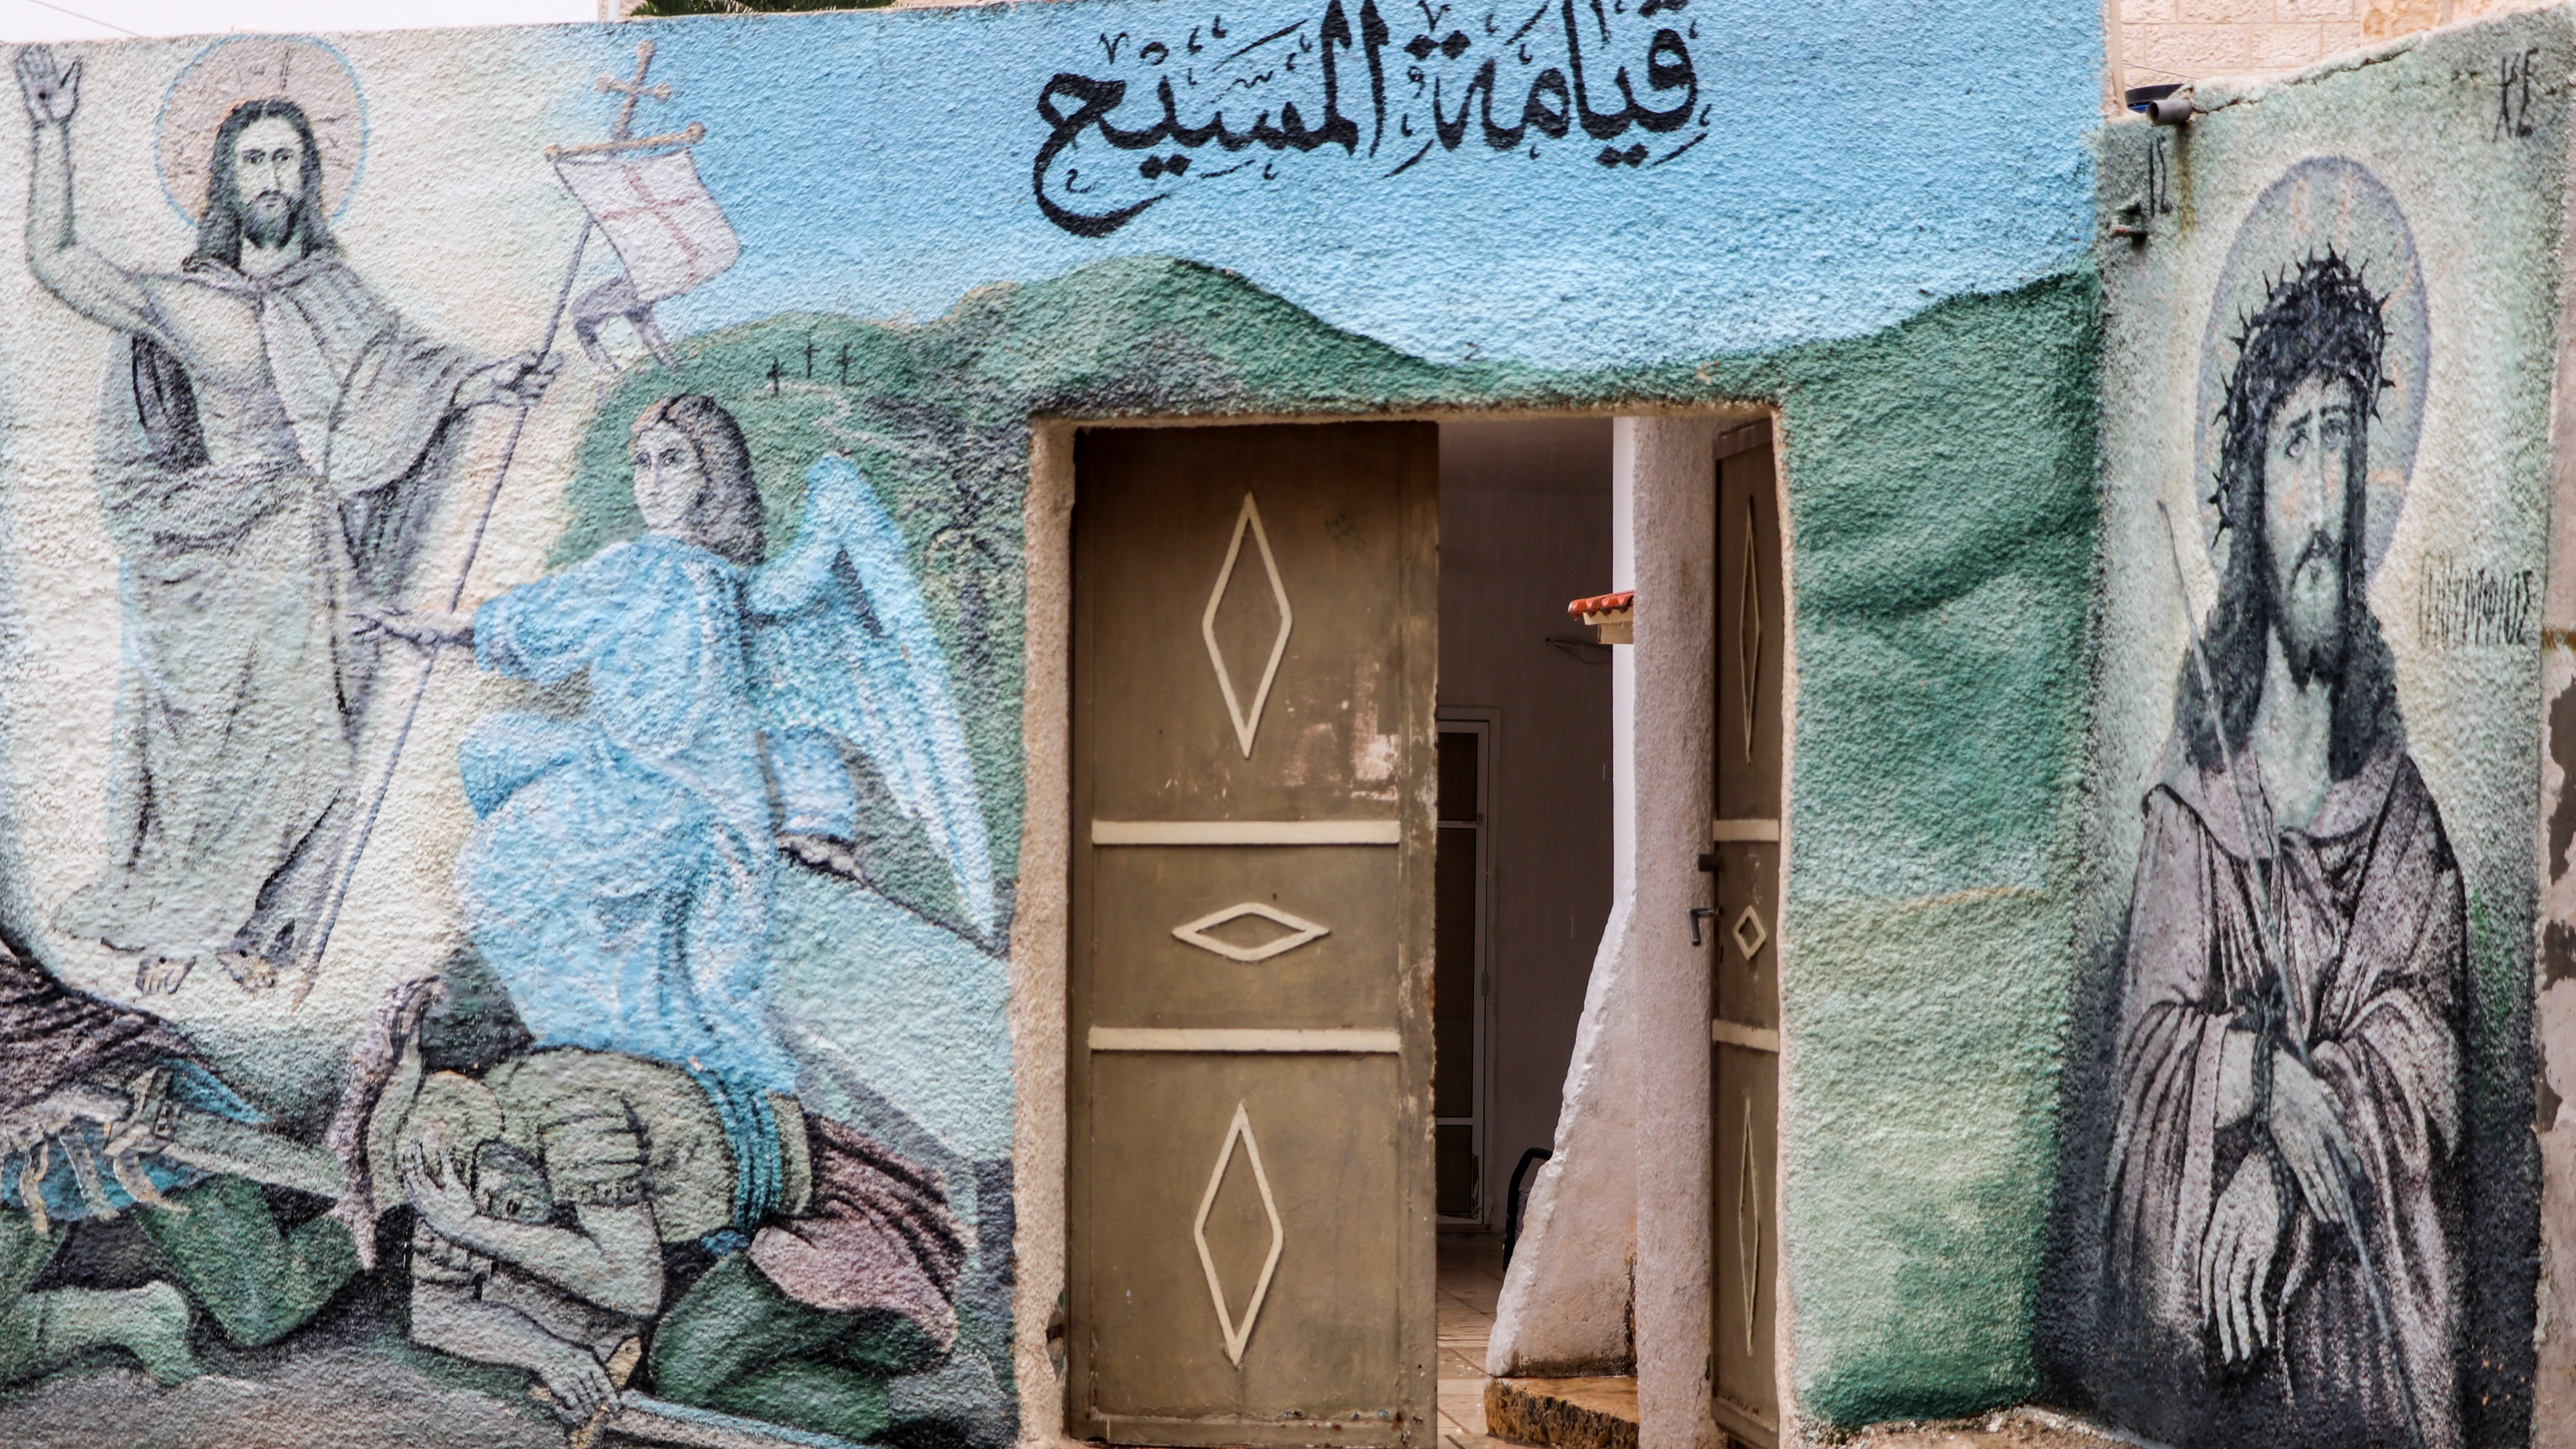 Walls across from the church of Aboudiya - by Stephanie Saldaña.